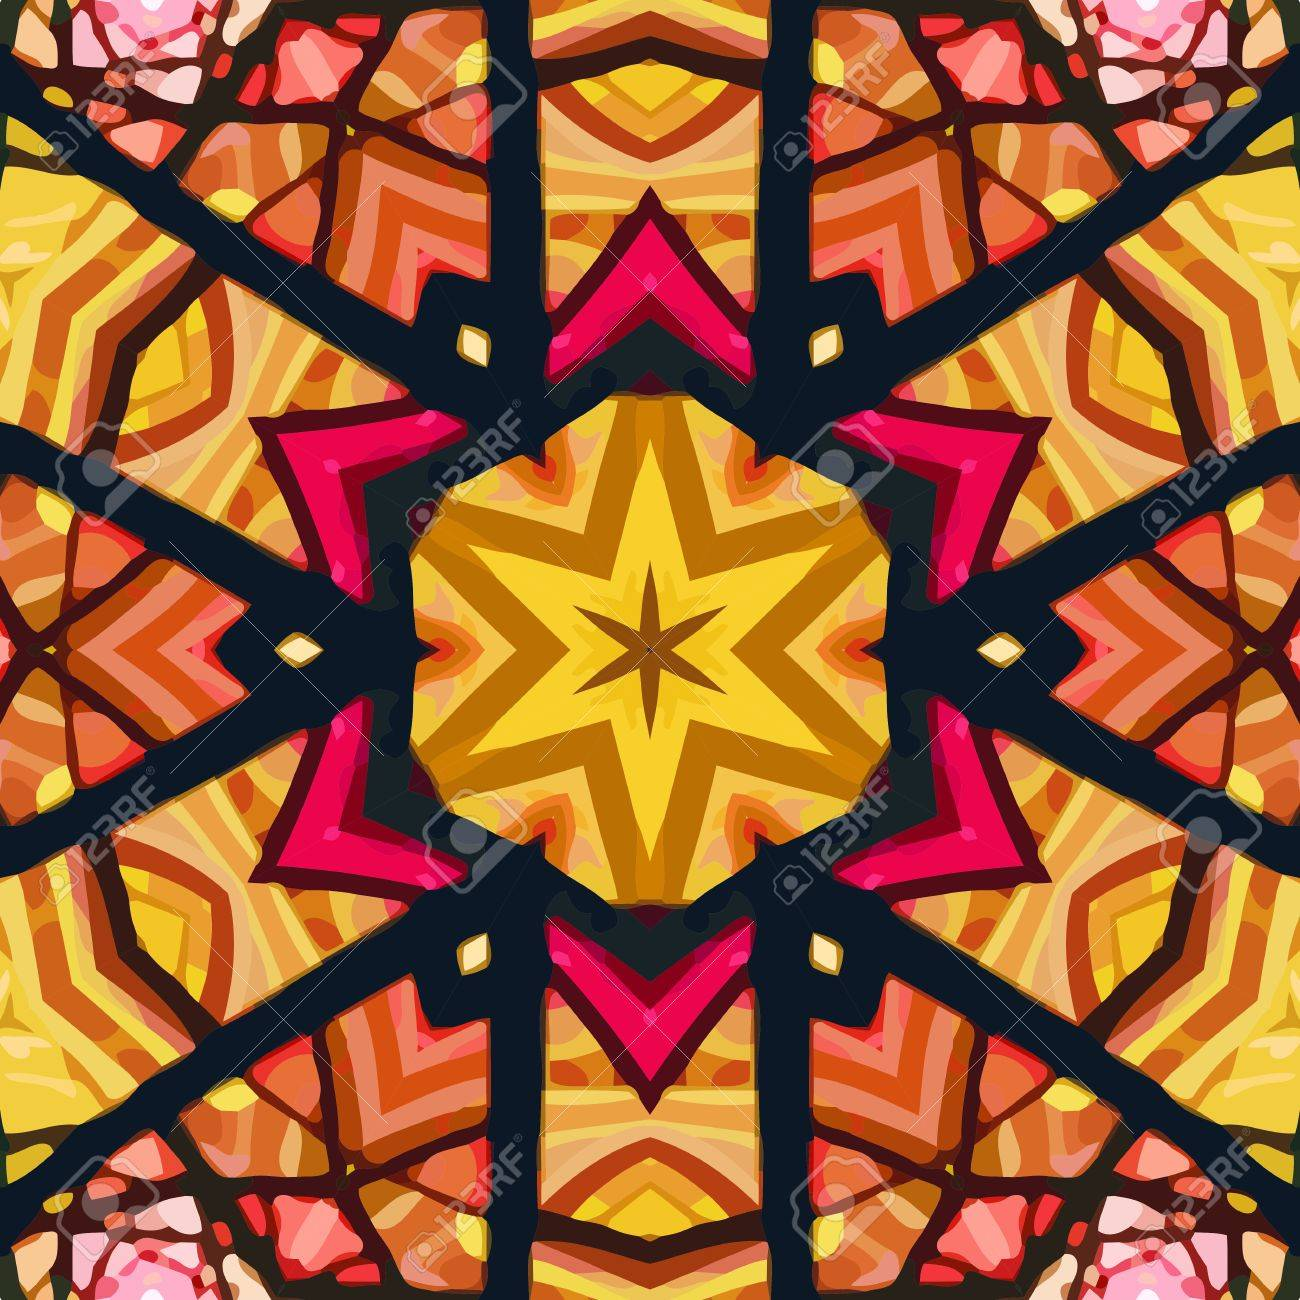 Stained Glass Pattern Seamless Symmetrical Background Template